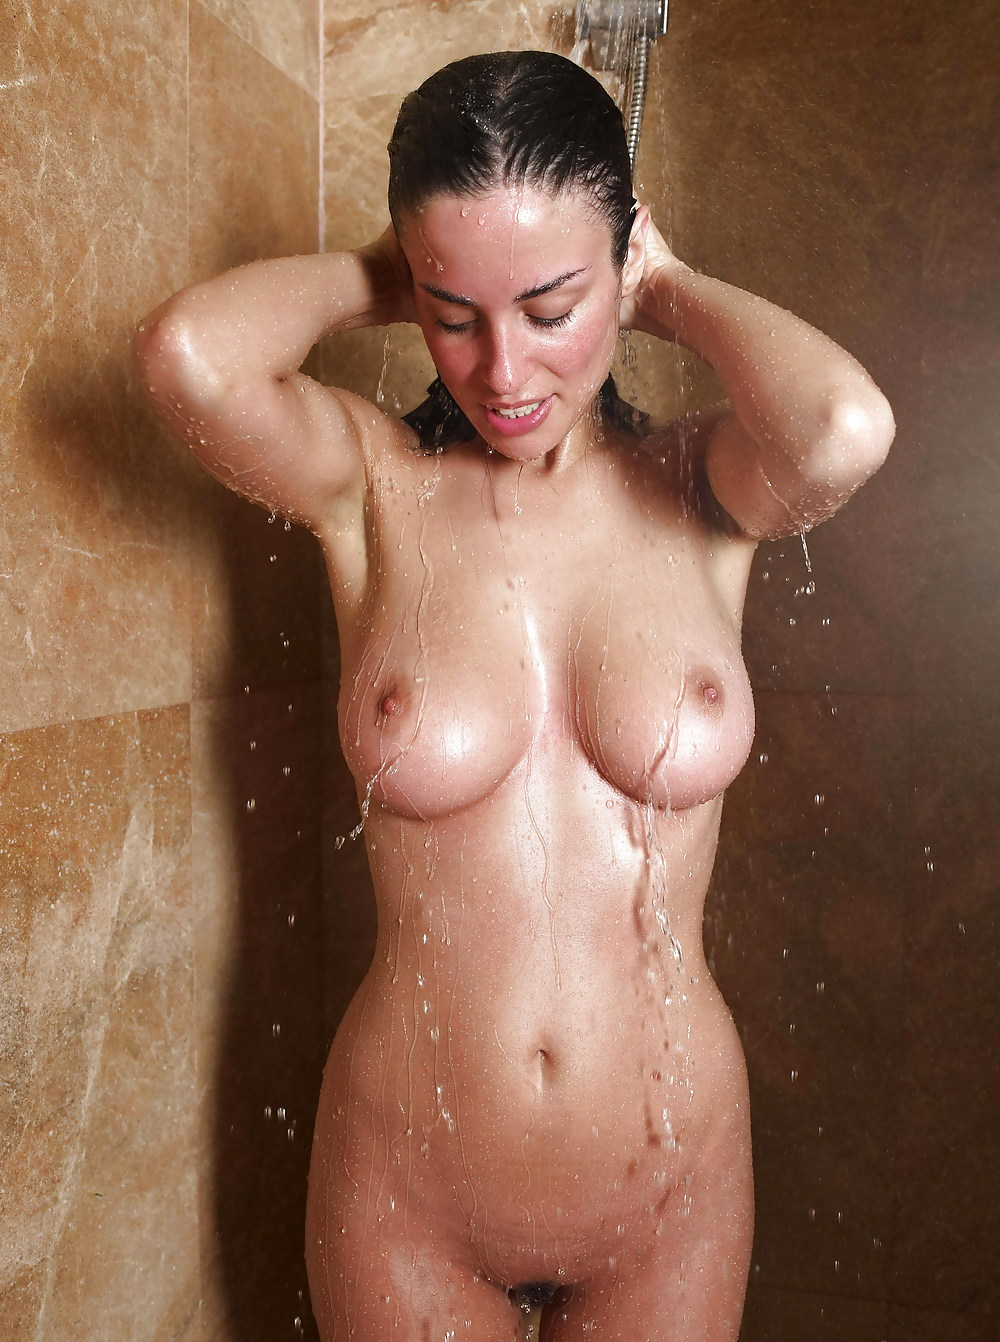 Woman in the shower boobs